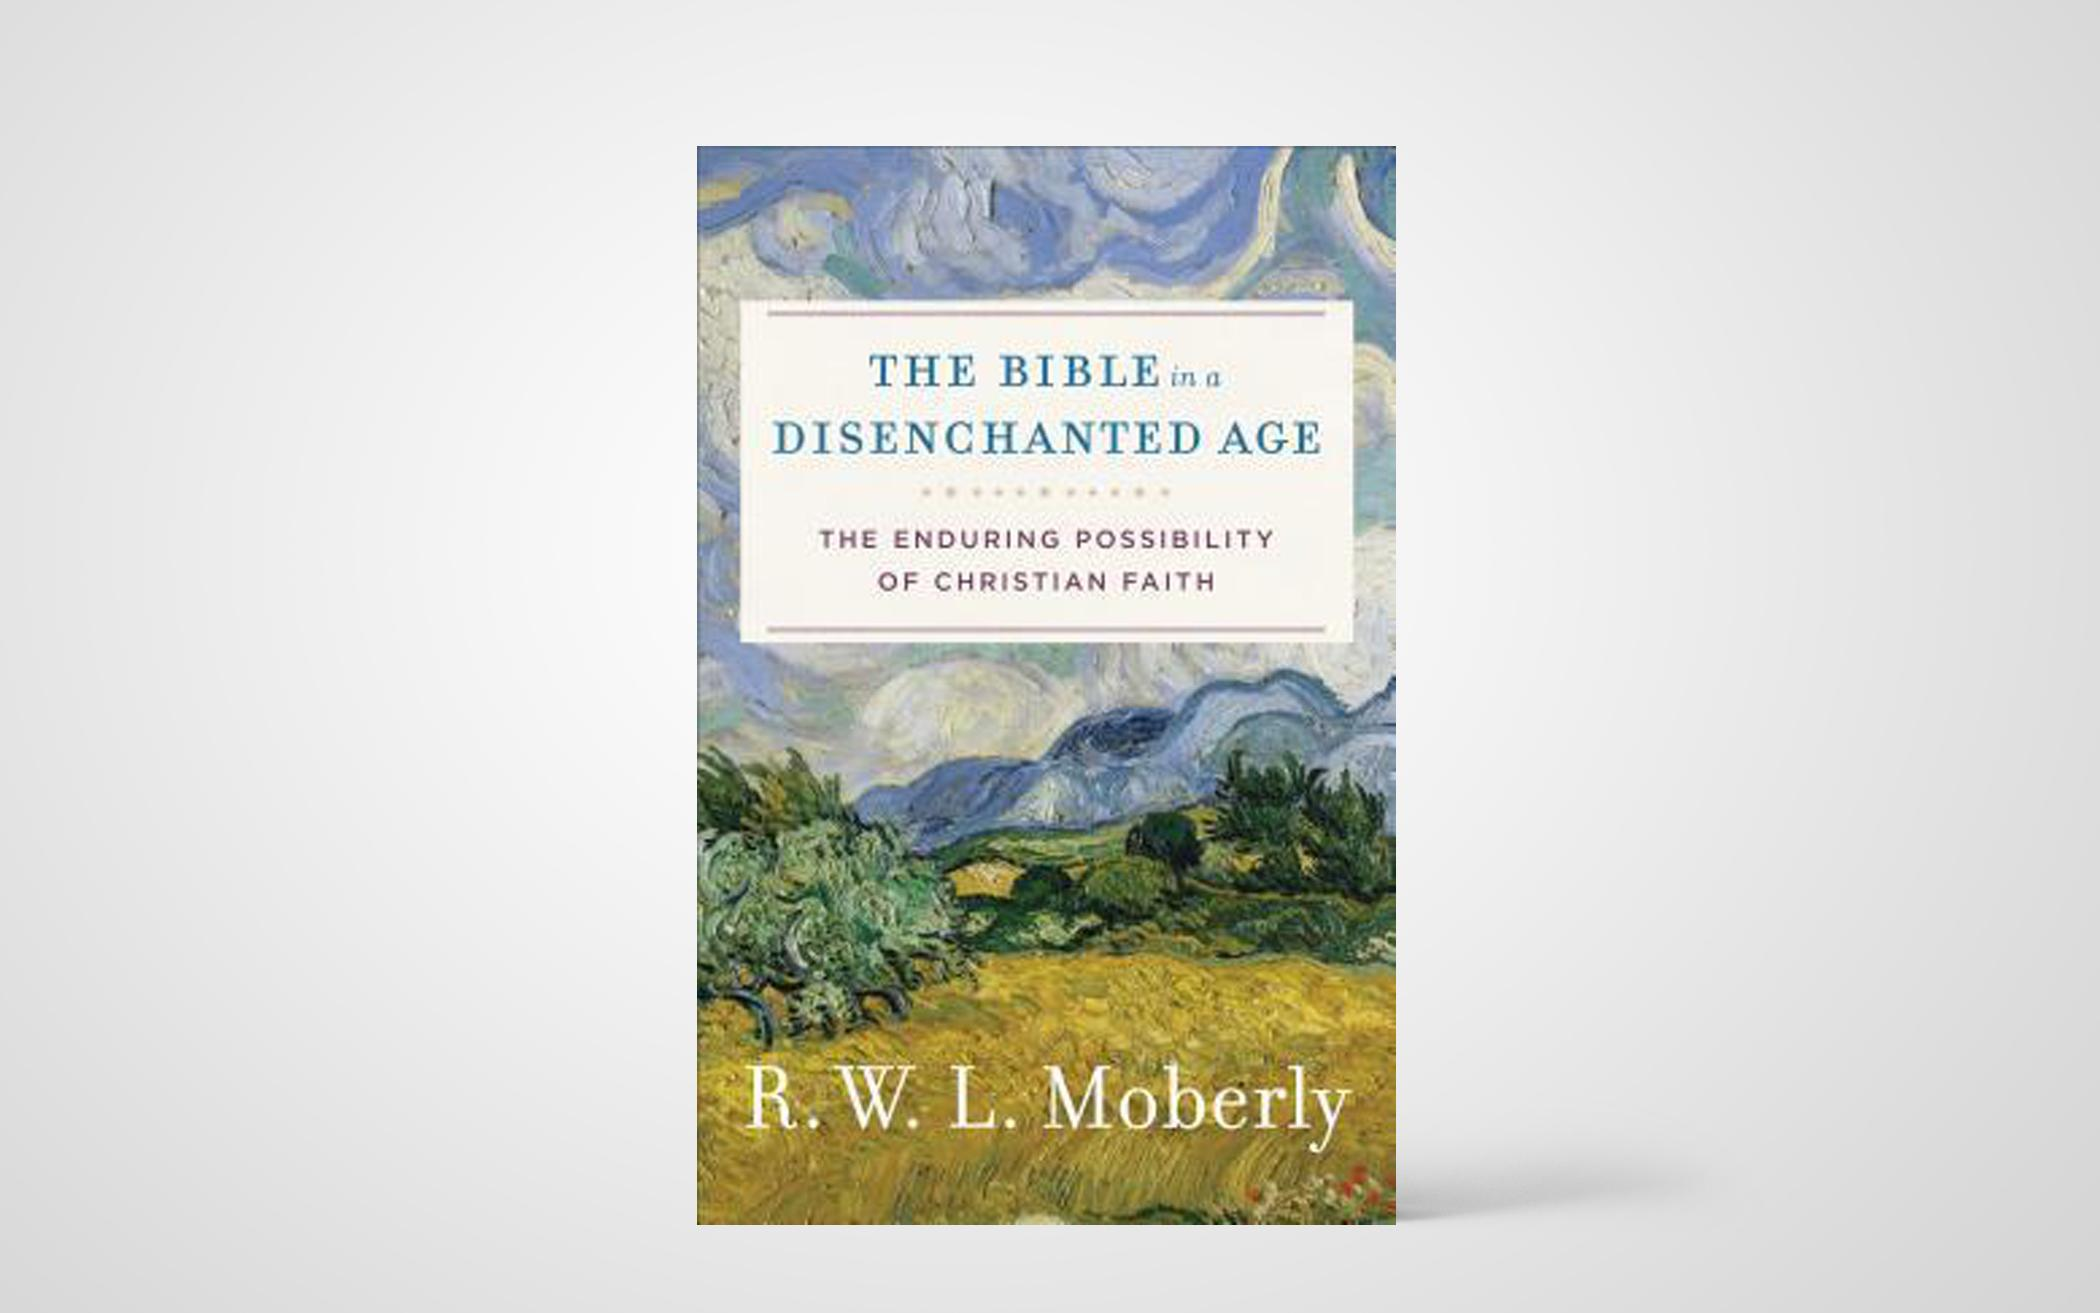 The Bible in a Disenchanted Age: The Enduring Possibility of Christian Faith